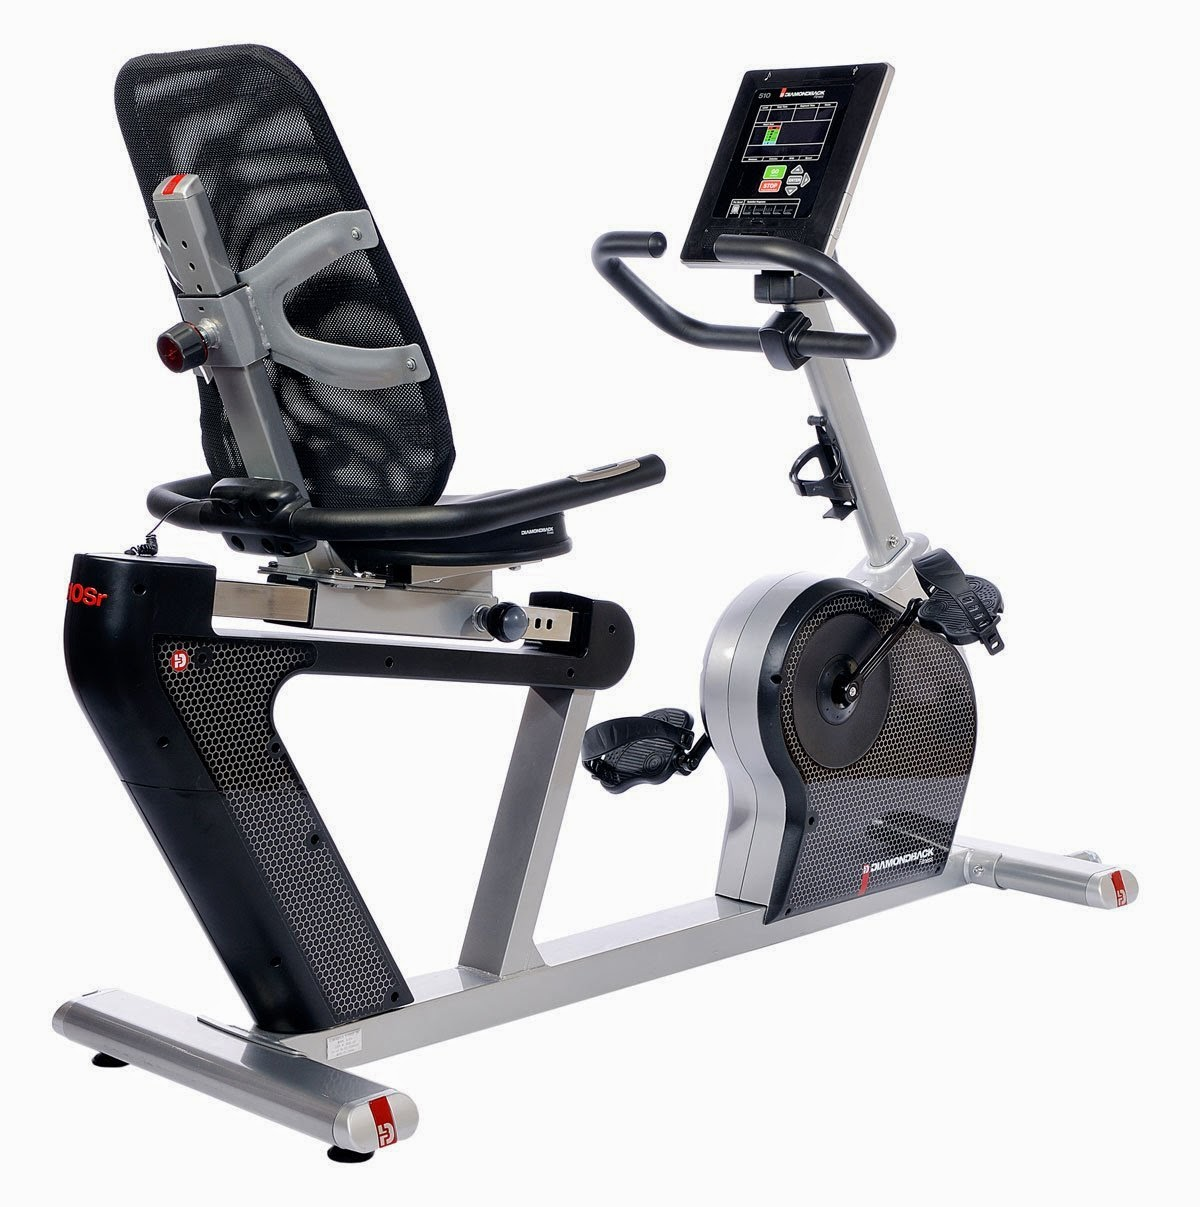 Diamondback Recumbent Bikes Recumbent Exercise Bike